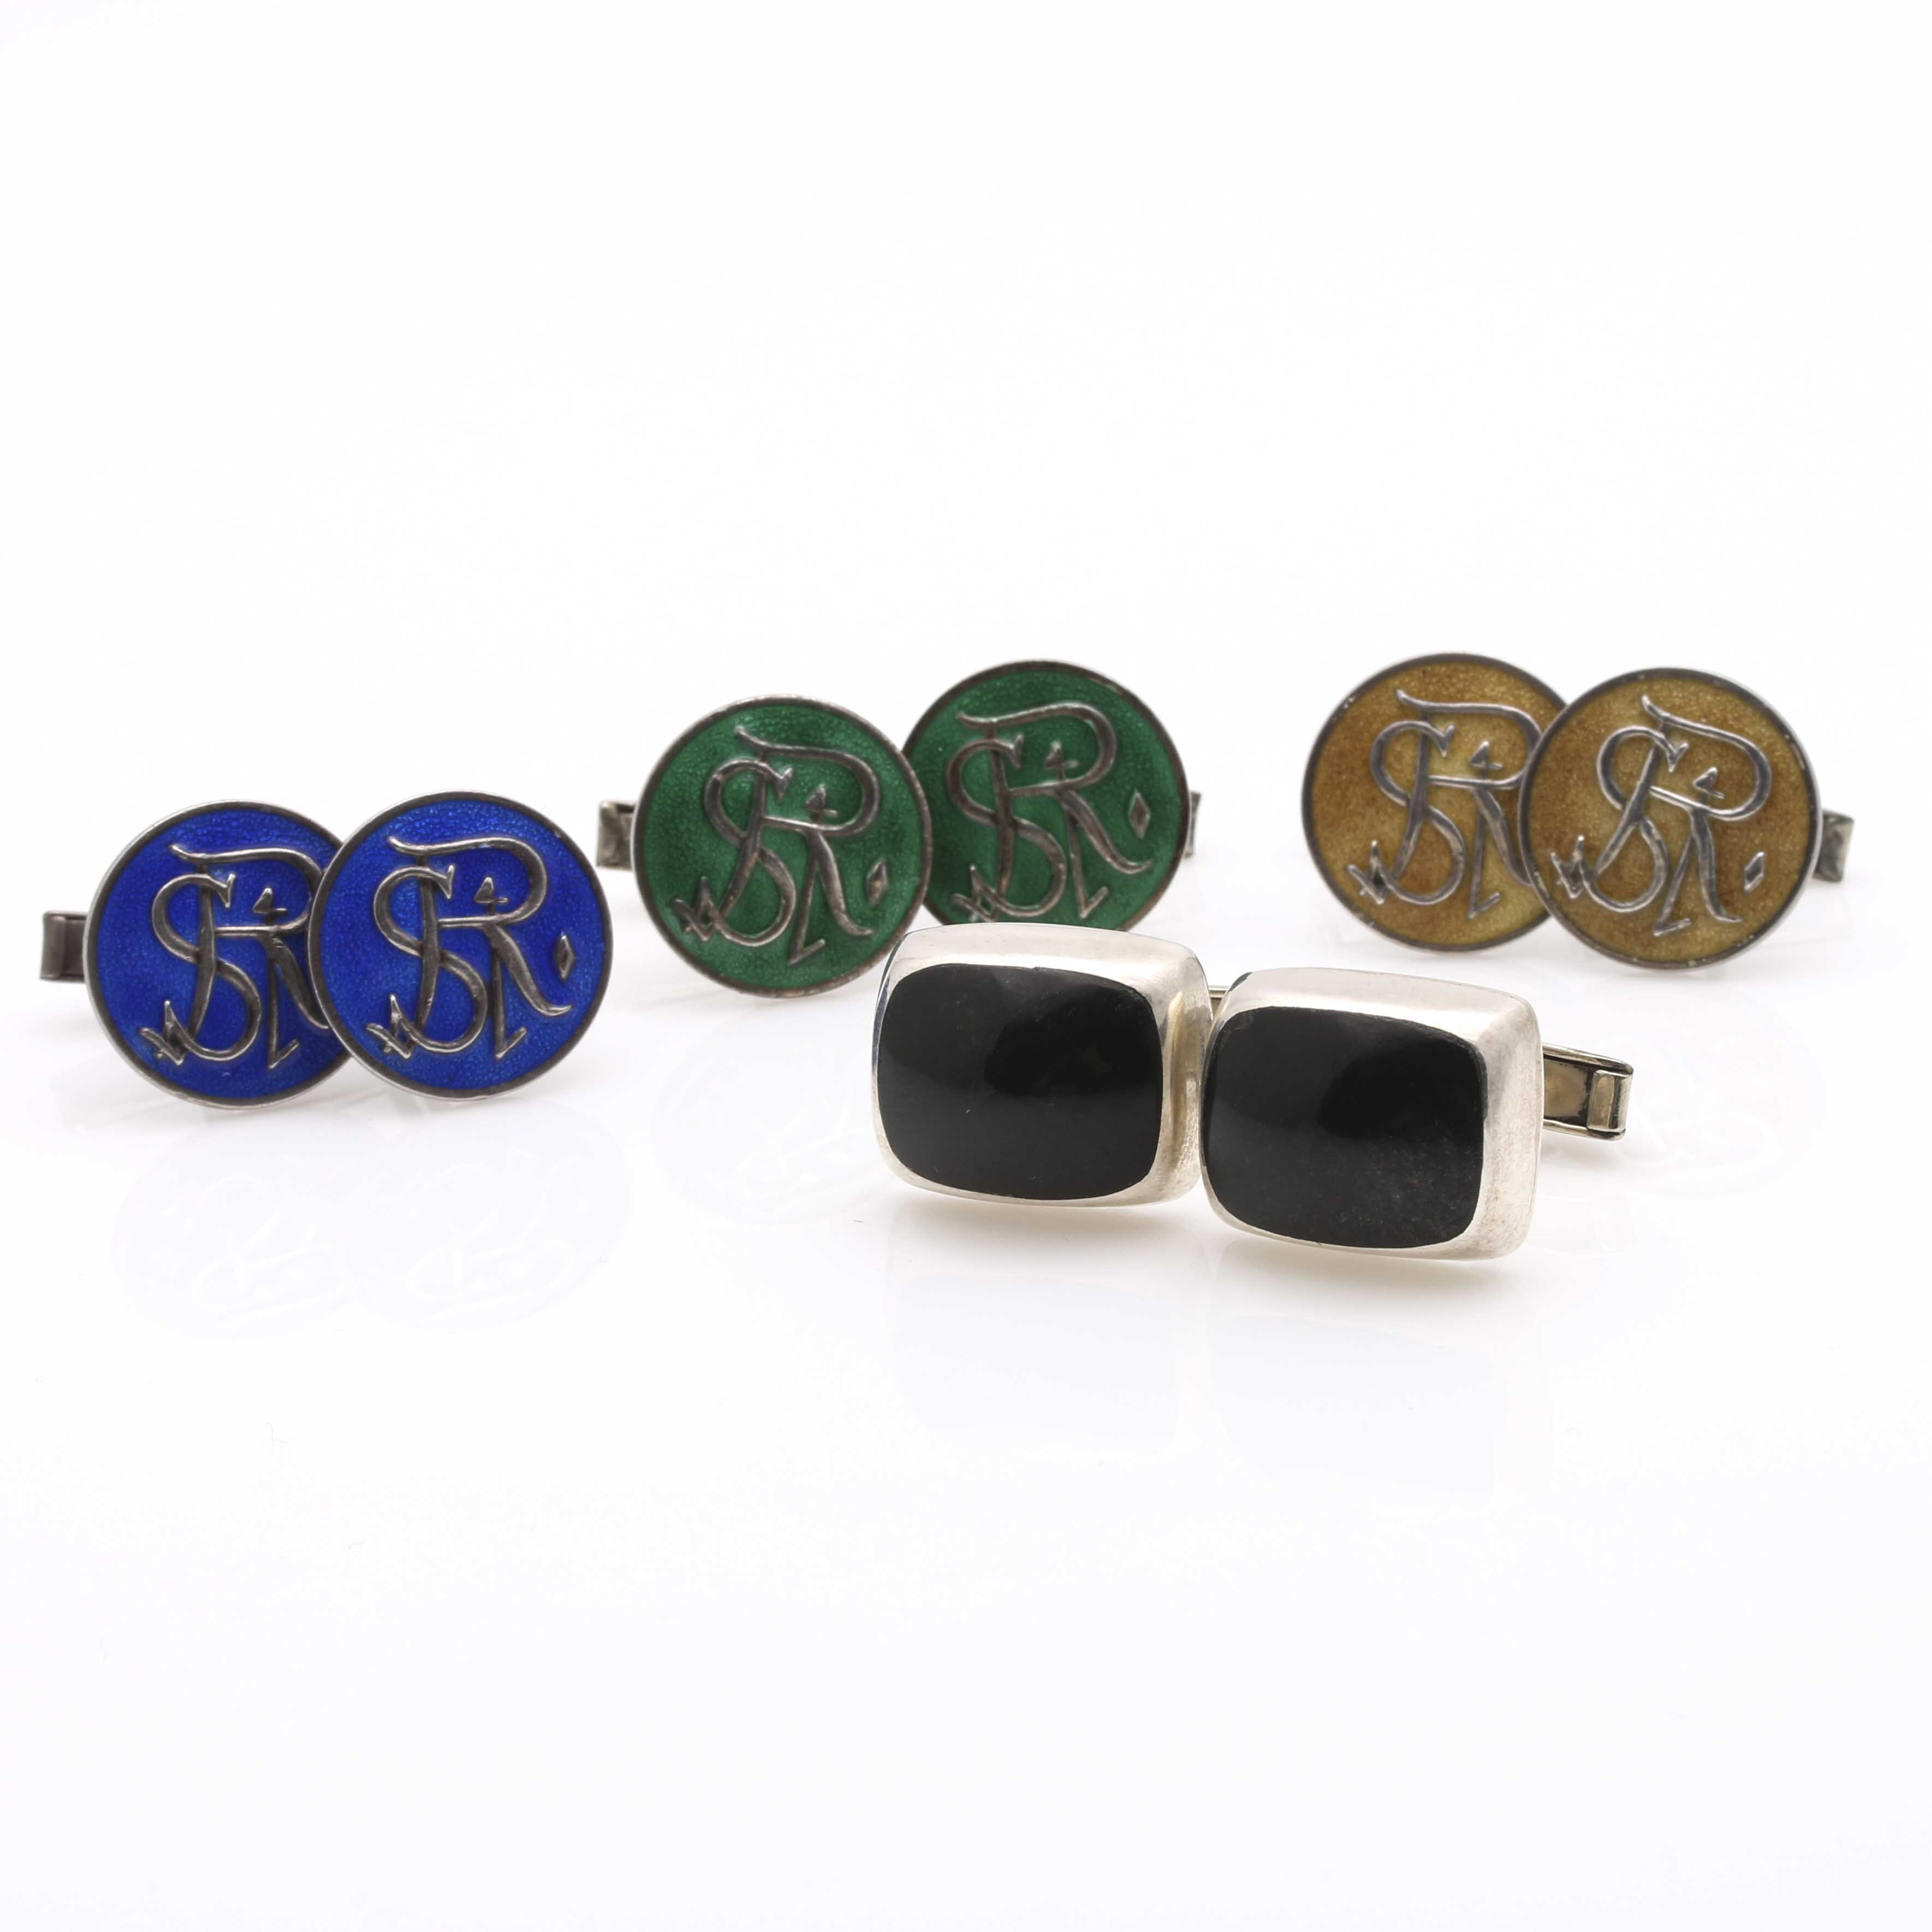 Sterling Silver Onyx and Enameled Cufflink Assortment